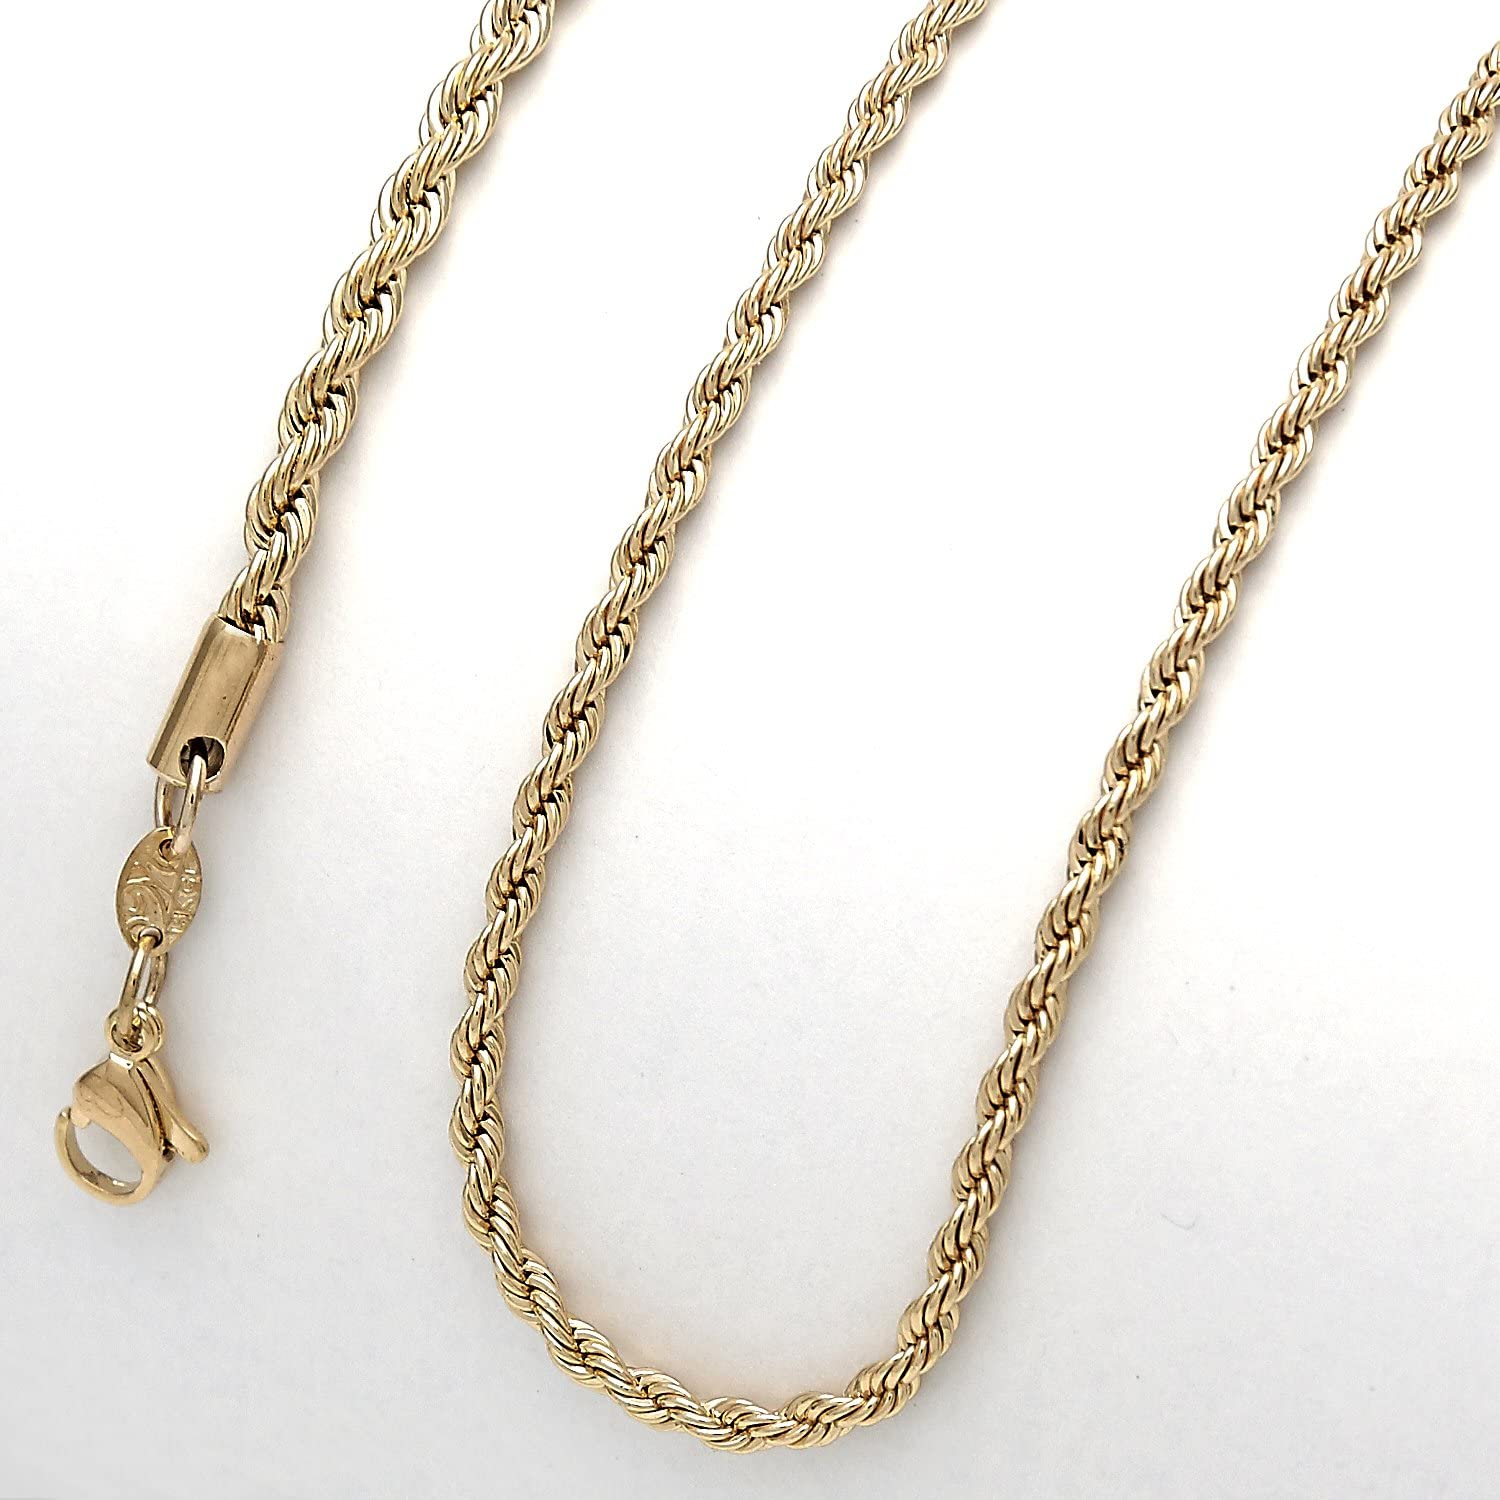 Rope Chain Necklace 3mm for Men and Women 14KT Gold Clad OR or Sterling Silver Clad Honest Prices and Quality 22.00, Gold-Plated-Base Tarnish Resistant